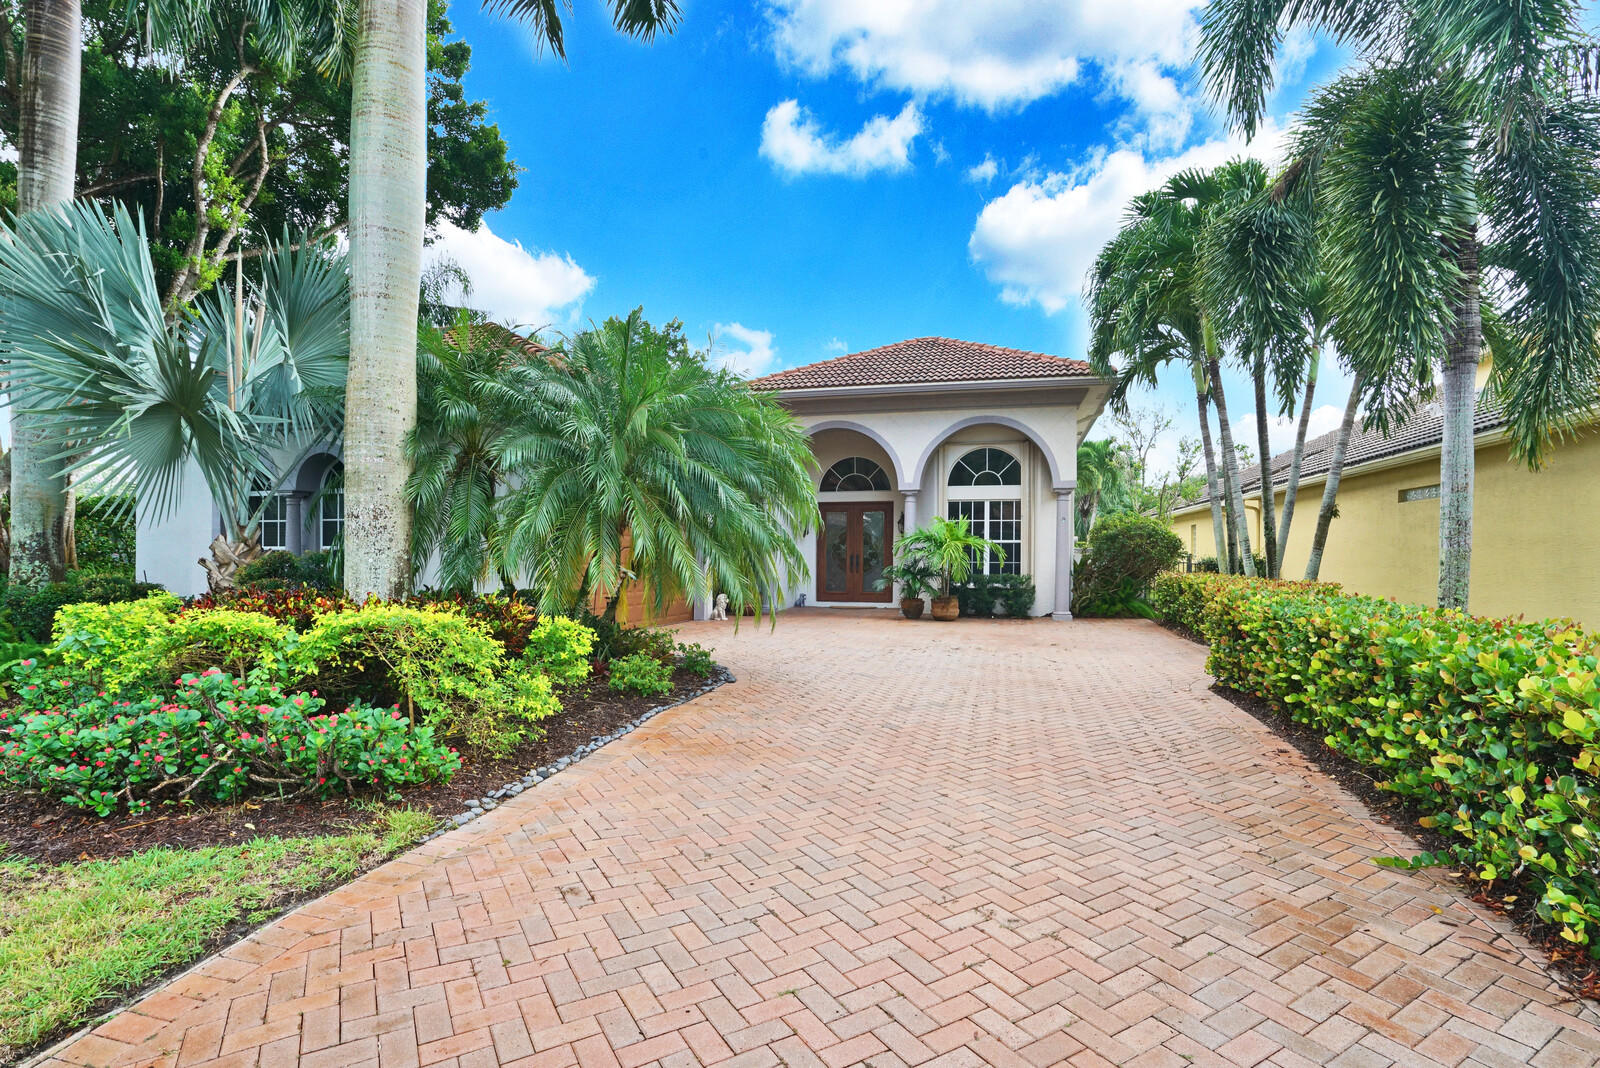 Details for 10124 Sand Cay Lane, West Palm Beach, FL 33412